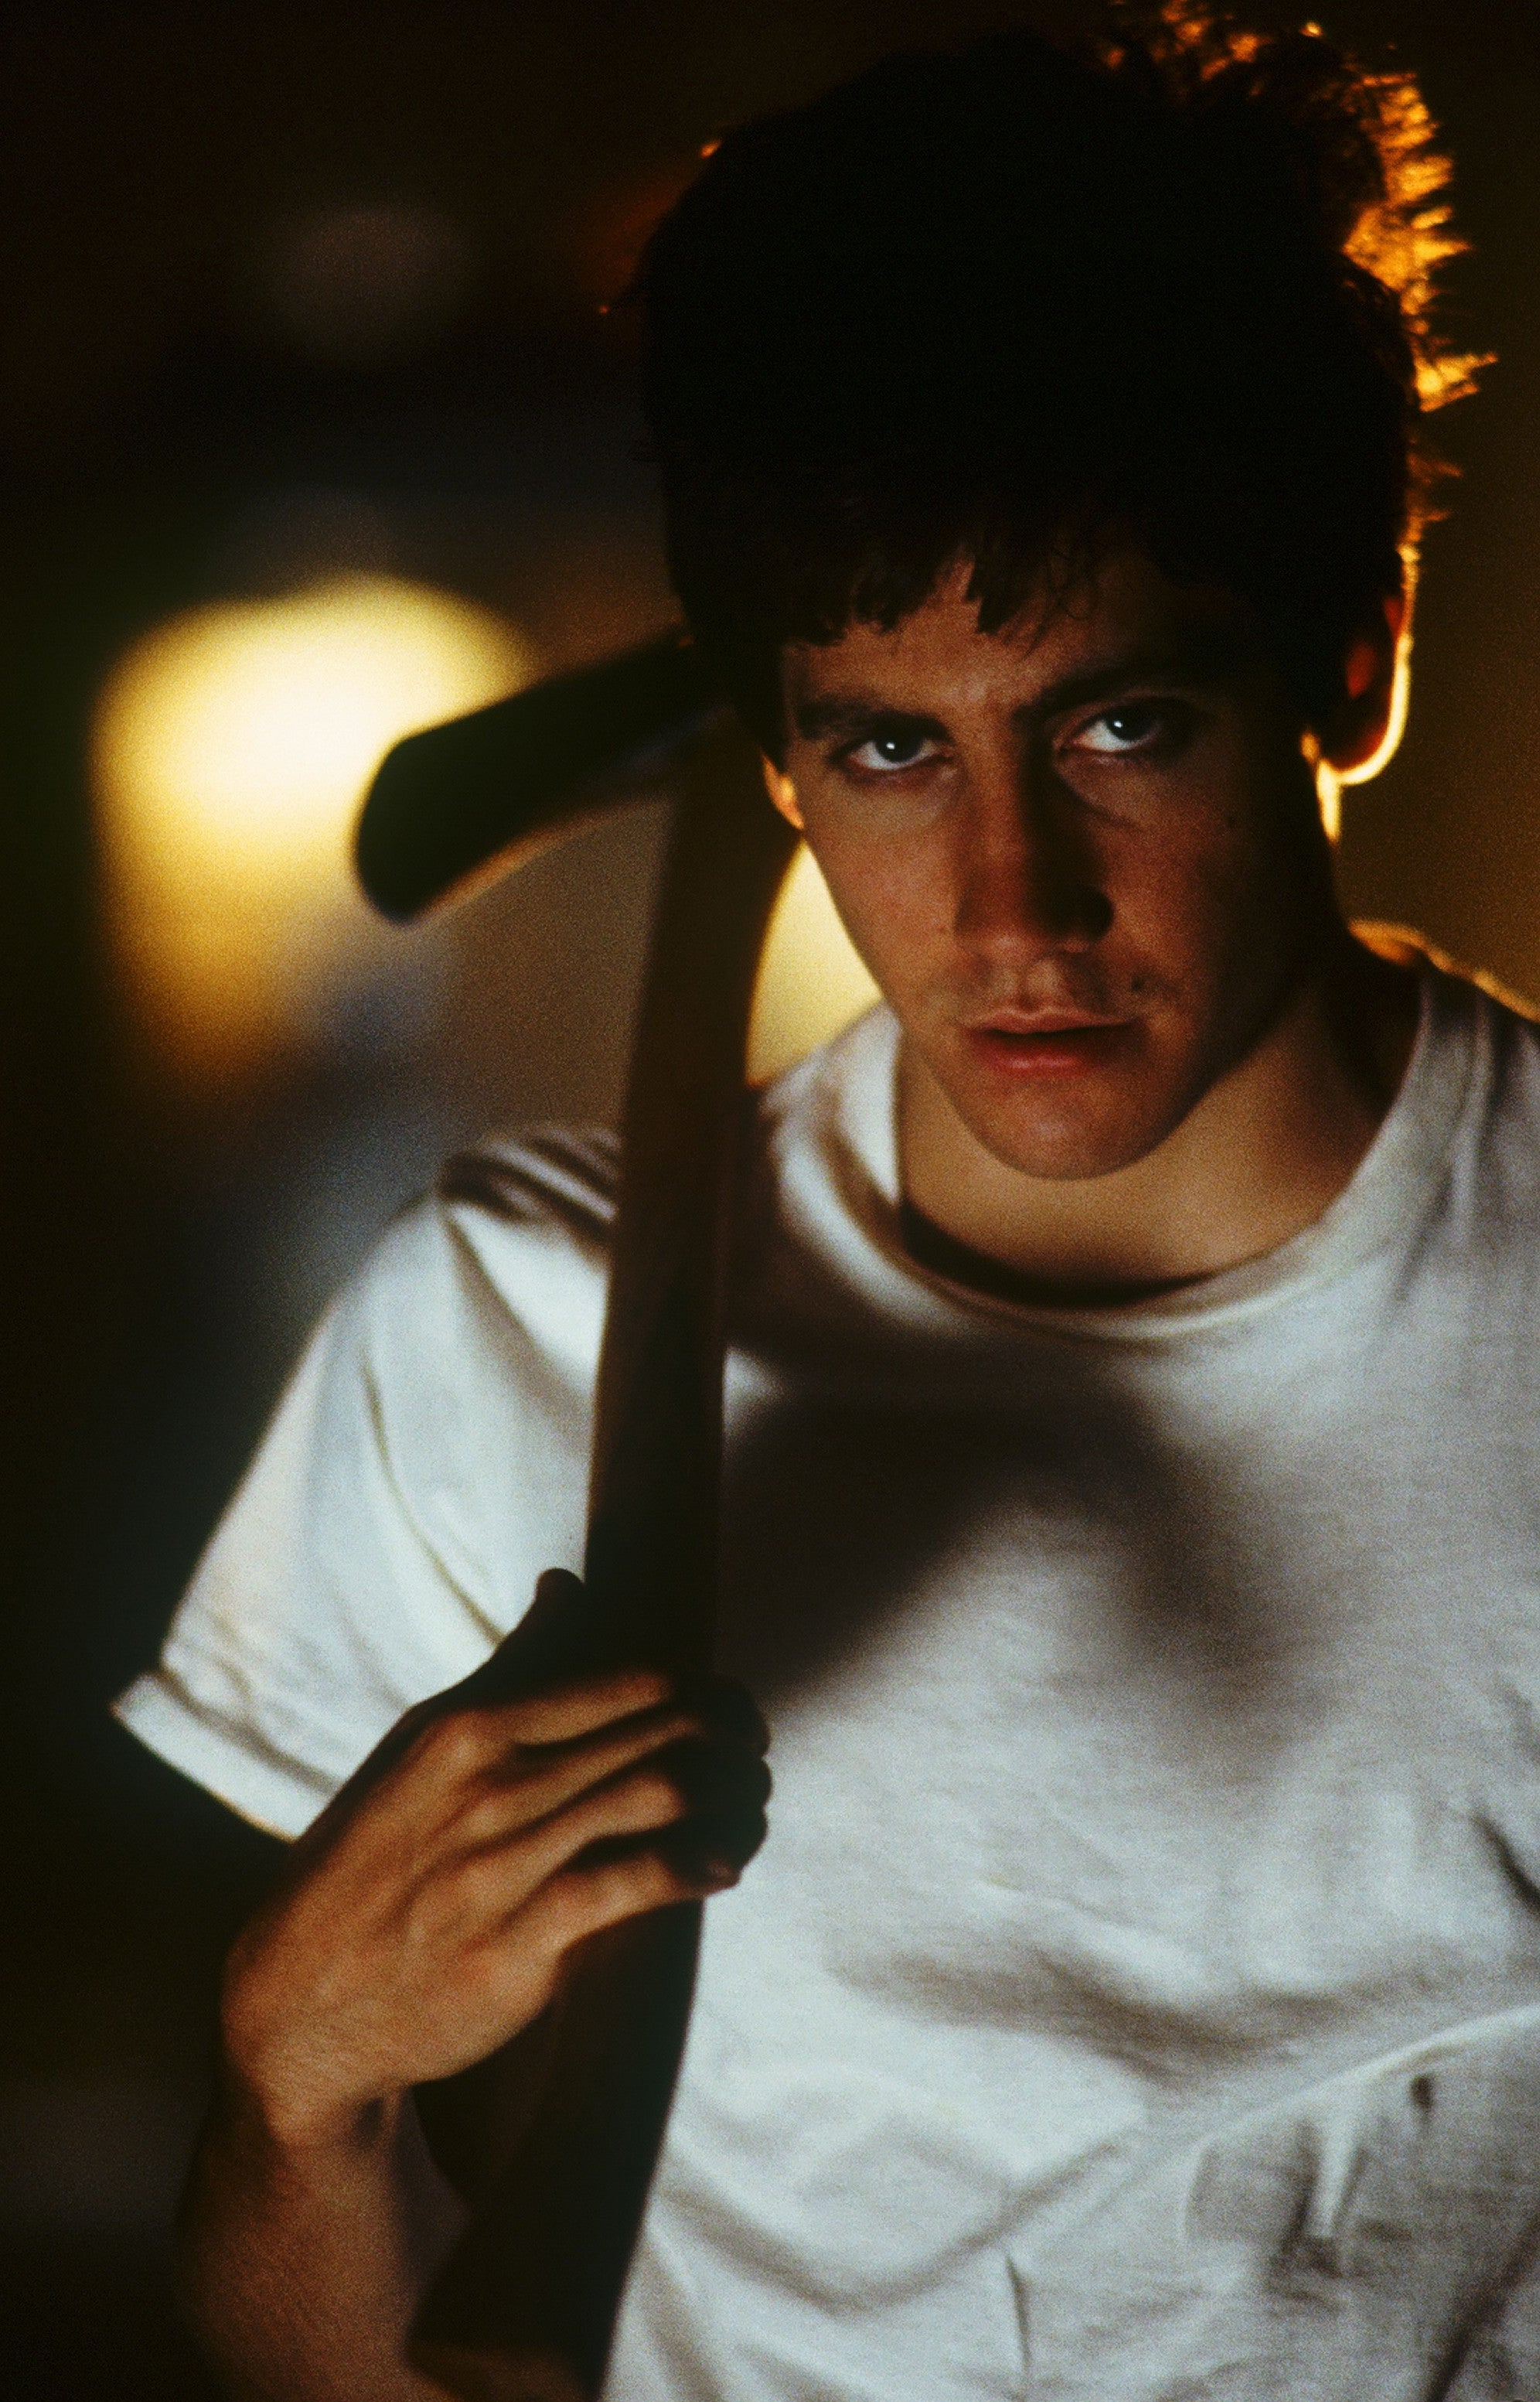 Donnie Darko de Richard Kelly